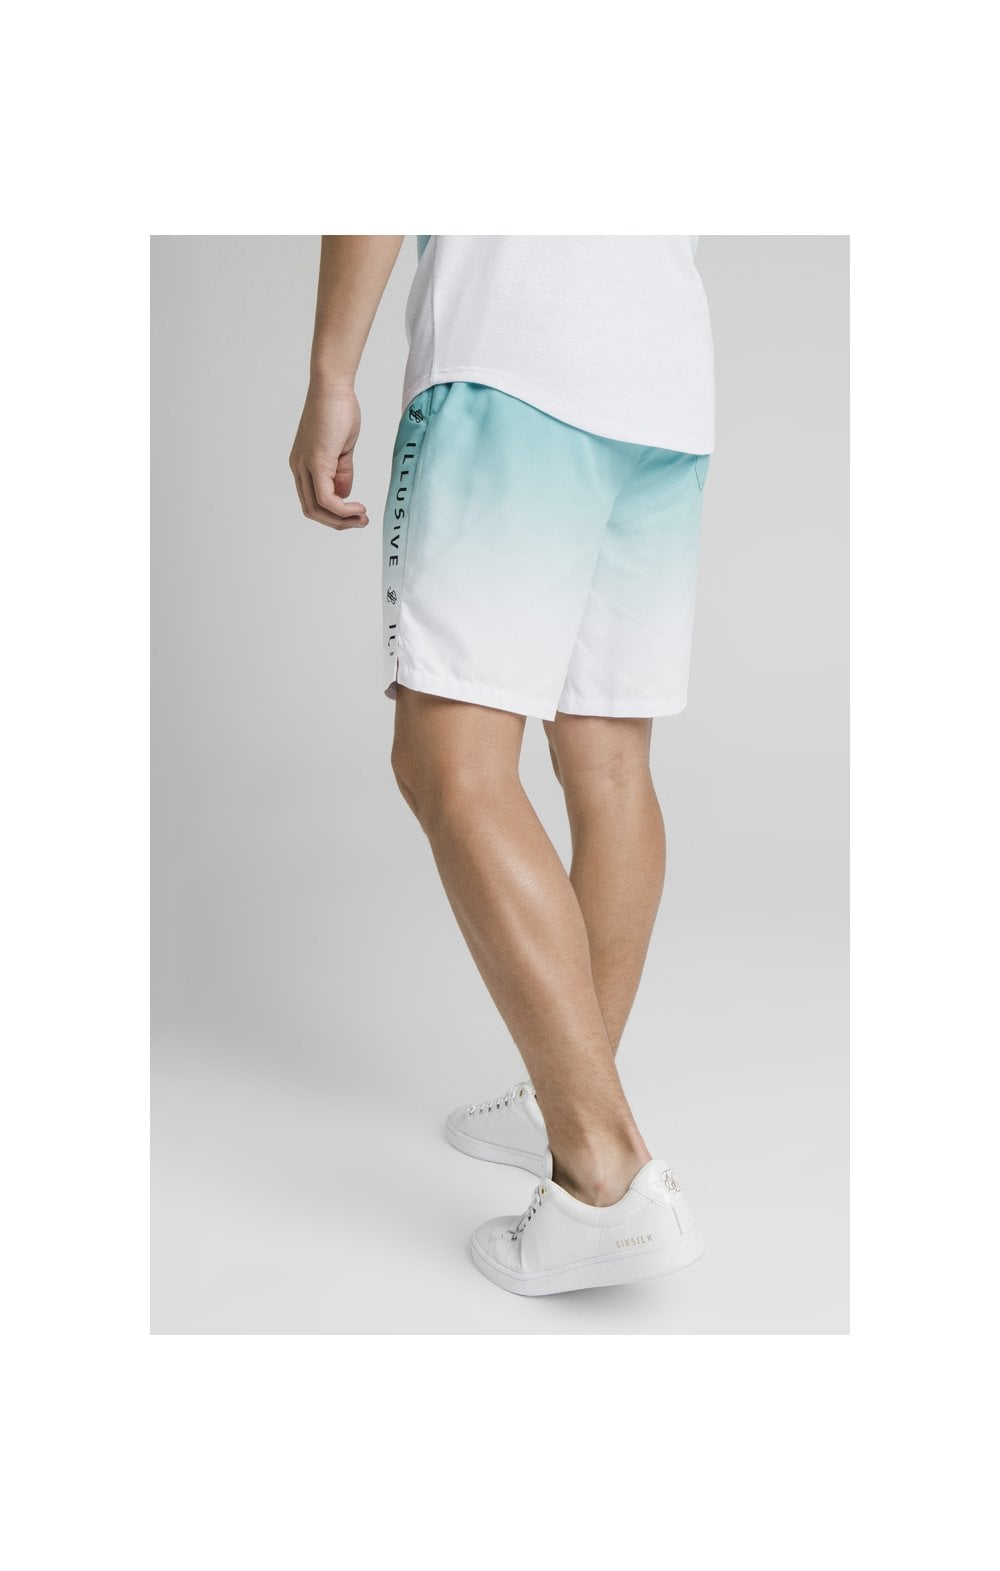 Load image into Gallery viewer, Illusive London Fade Swim Shorts - Teal & White (4)